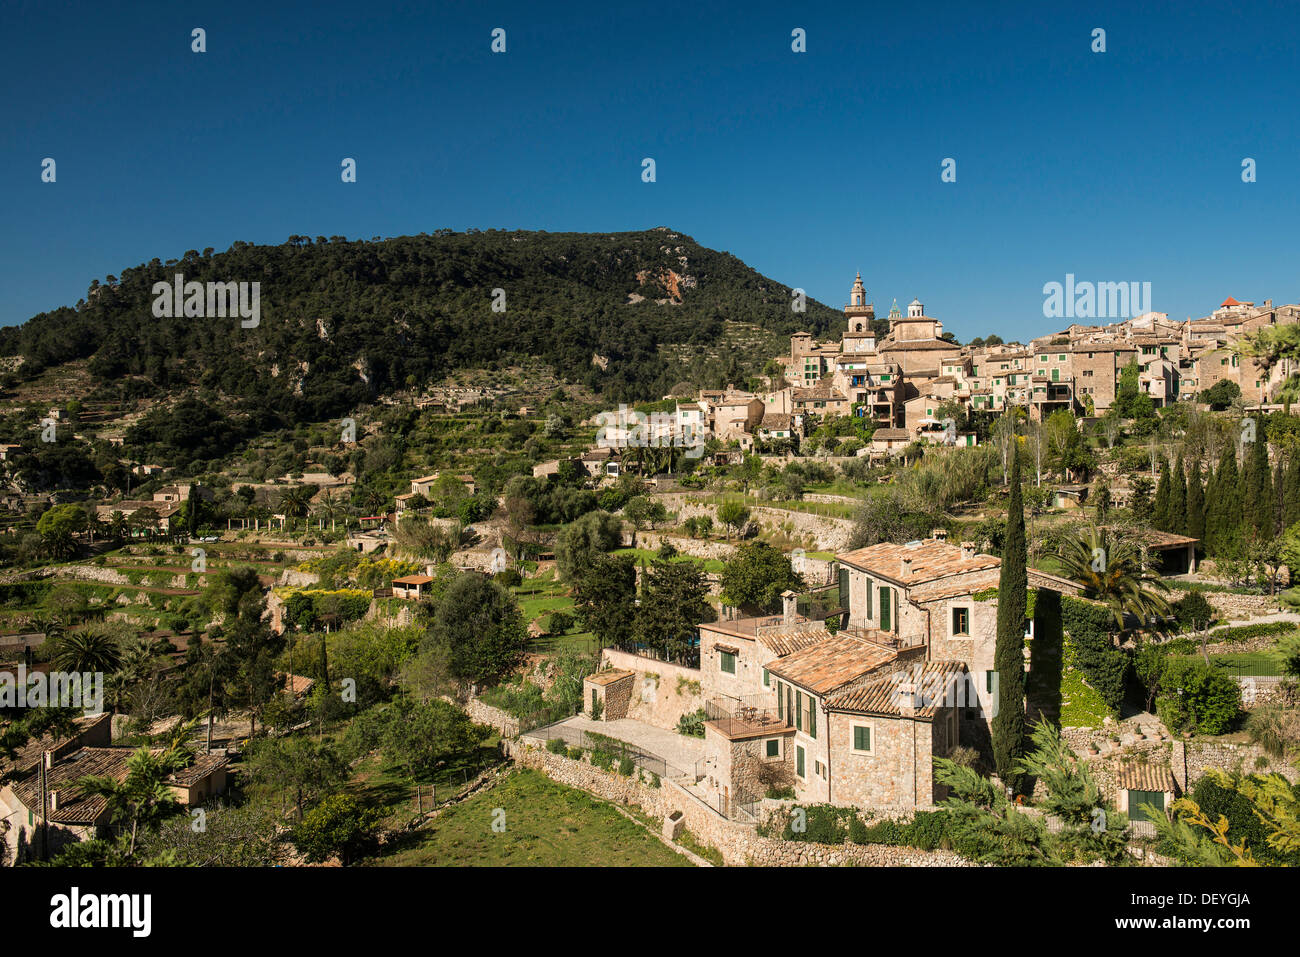 Town in the mountains, Valldemossa, Majorca, Balearic Islands, Spain Stock Photo